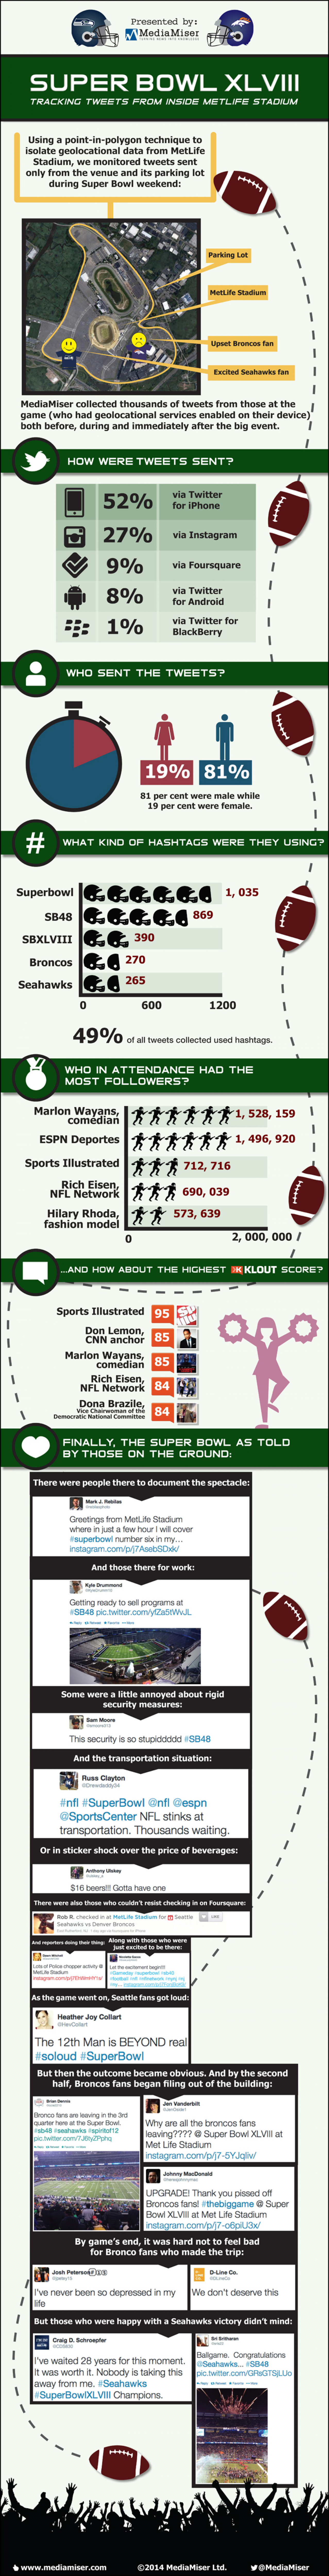 Super Bowl XLVIII: Tracking Tweets from Inside MetLife Stadium Infographic